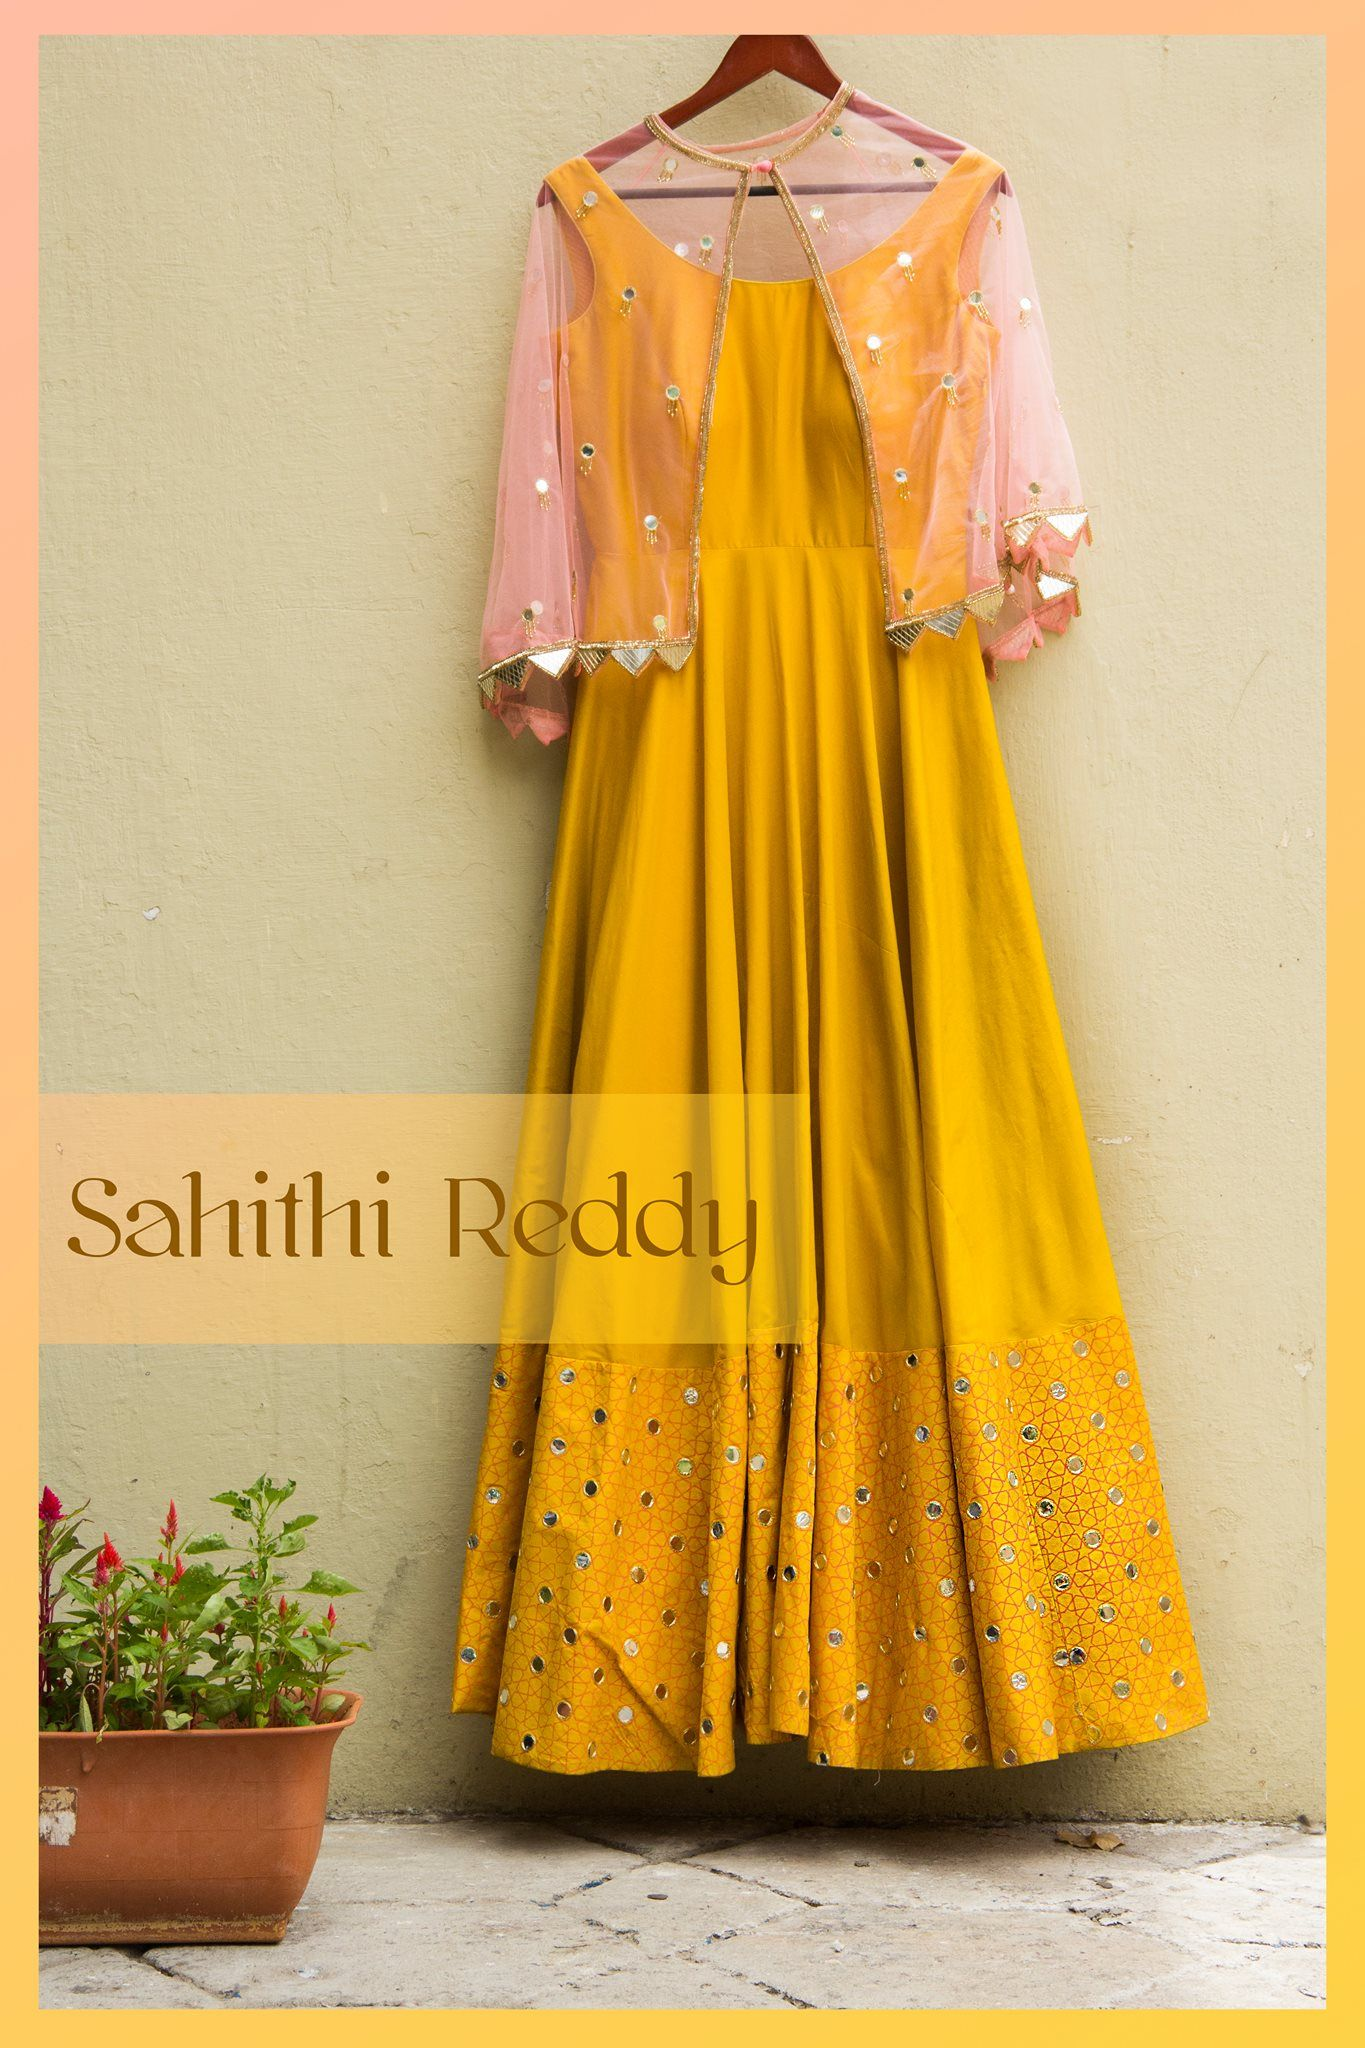 Sahithi Reddy Designer Hyderabad 22 July 2016 Designer Dresses Indian Indian Wedding Dress Designers Indian Party Wear